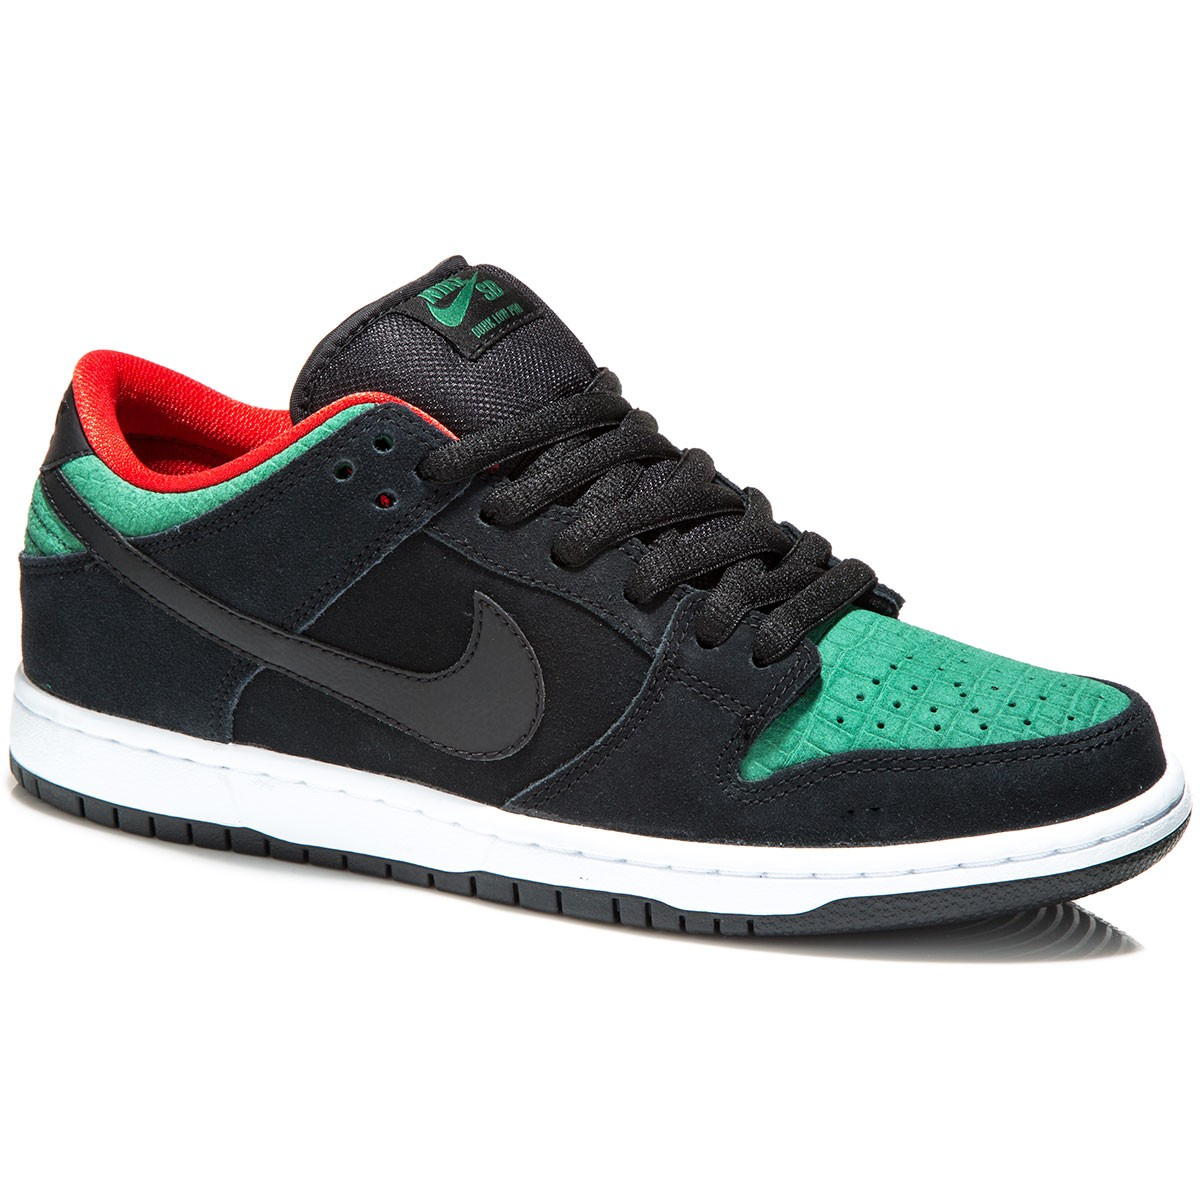 Nike Dunk Low Pro SB Shoes